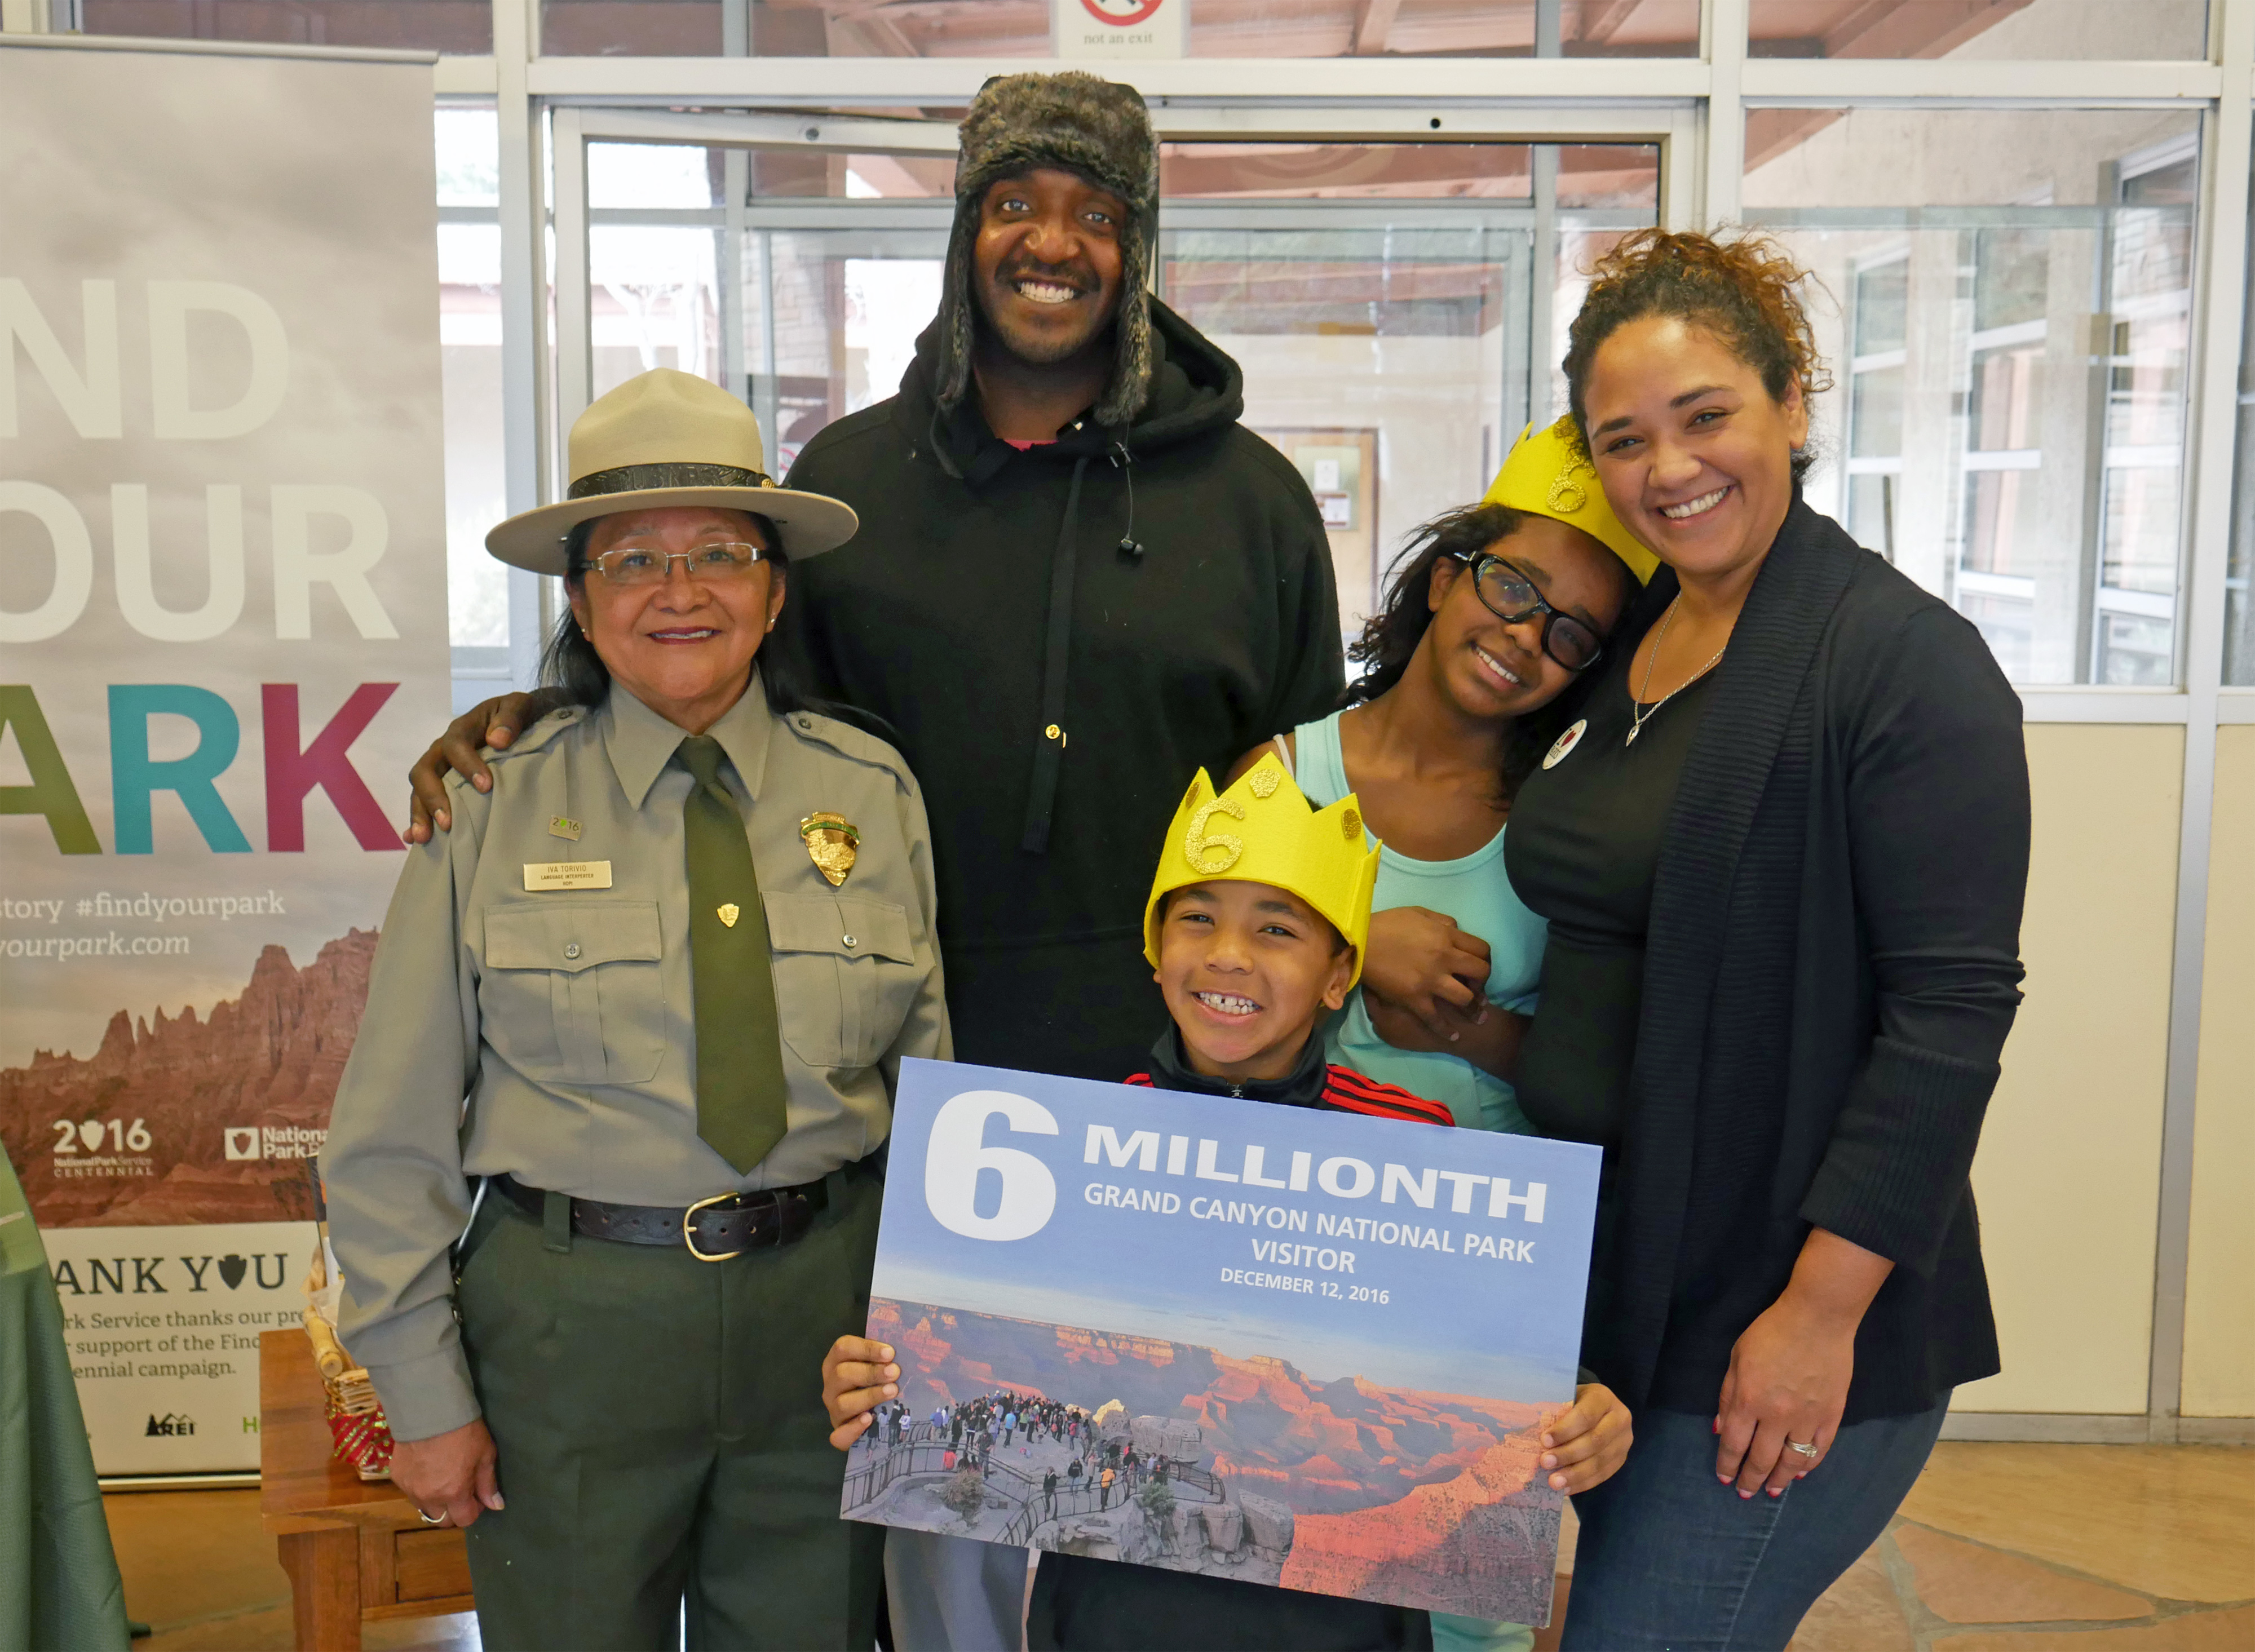 Park ranger Iva Torivio welcomes the Johnson family